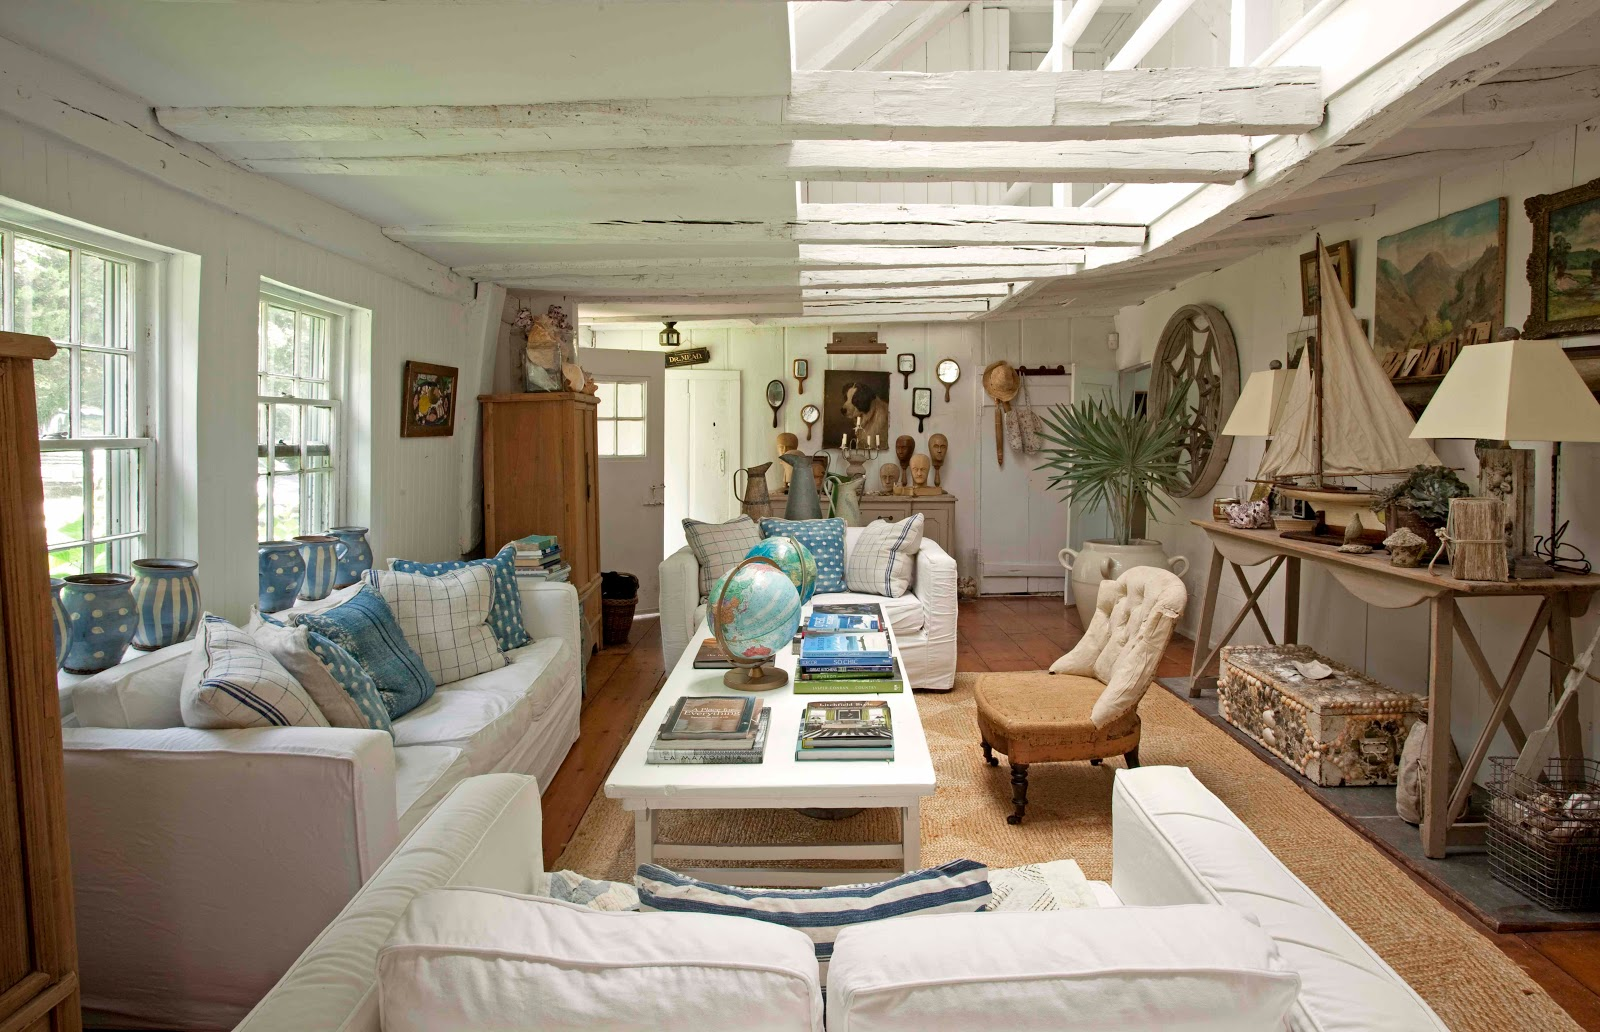 Stylebeat seaside charm rooms that inspire by the sea for Beach cottage design ideas